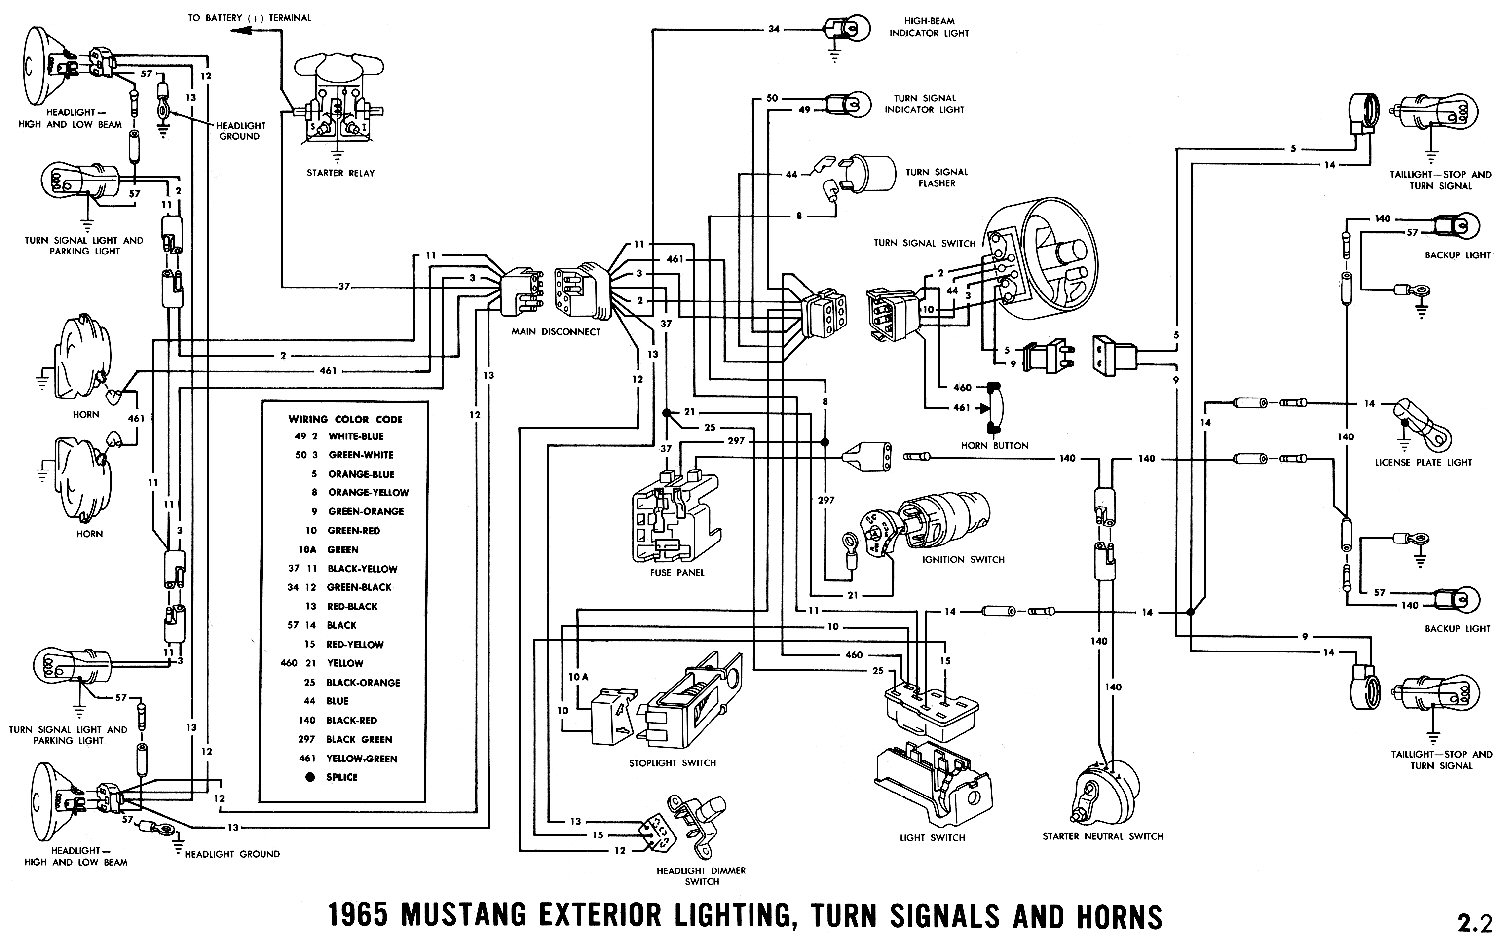 1967 mustang fog light wiring diagram rh homesecurity press 1965 Ford Mustang  Wiring Diagram 1966 Mustang